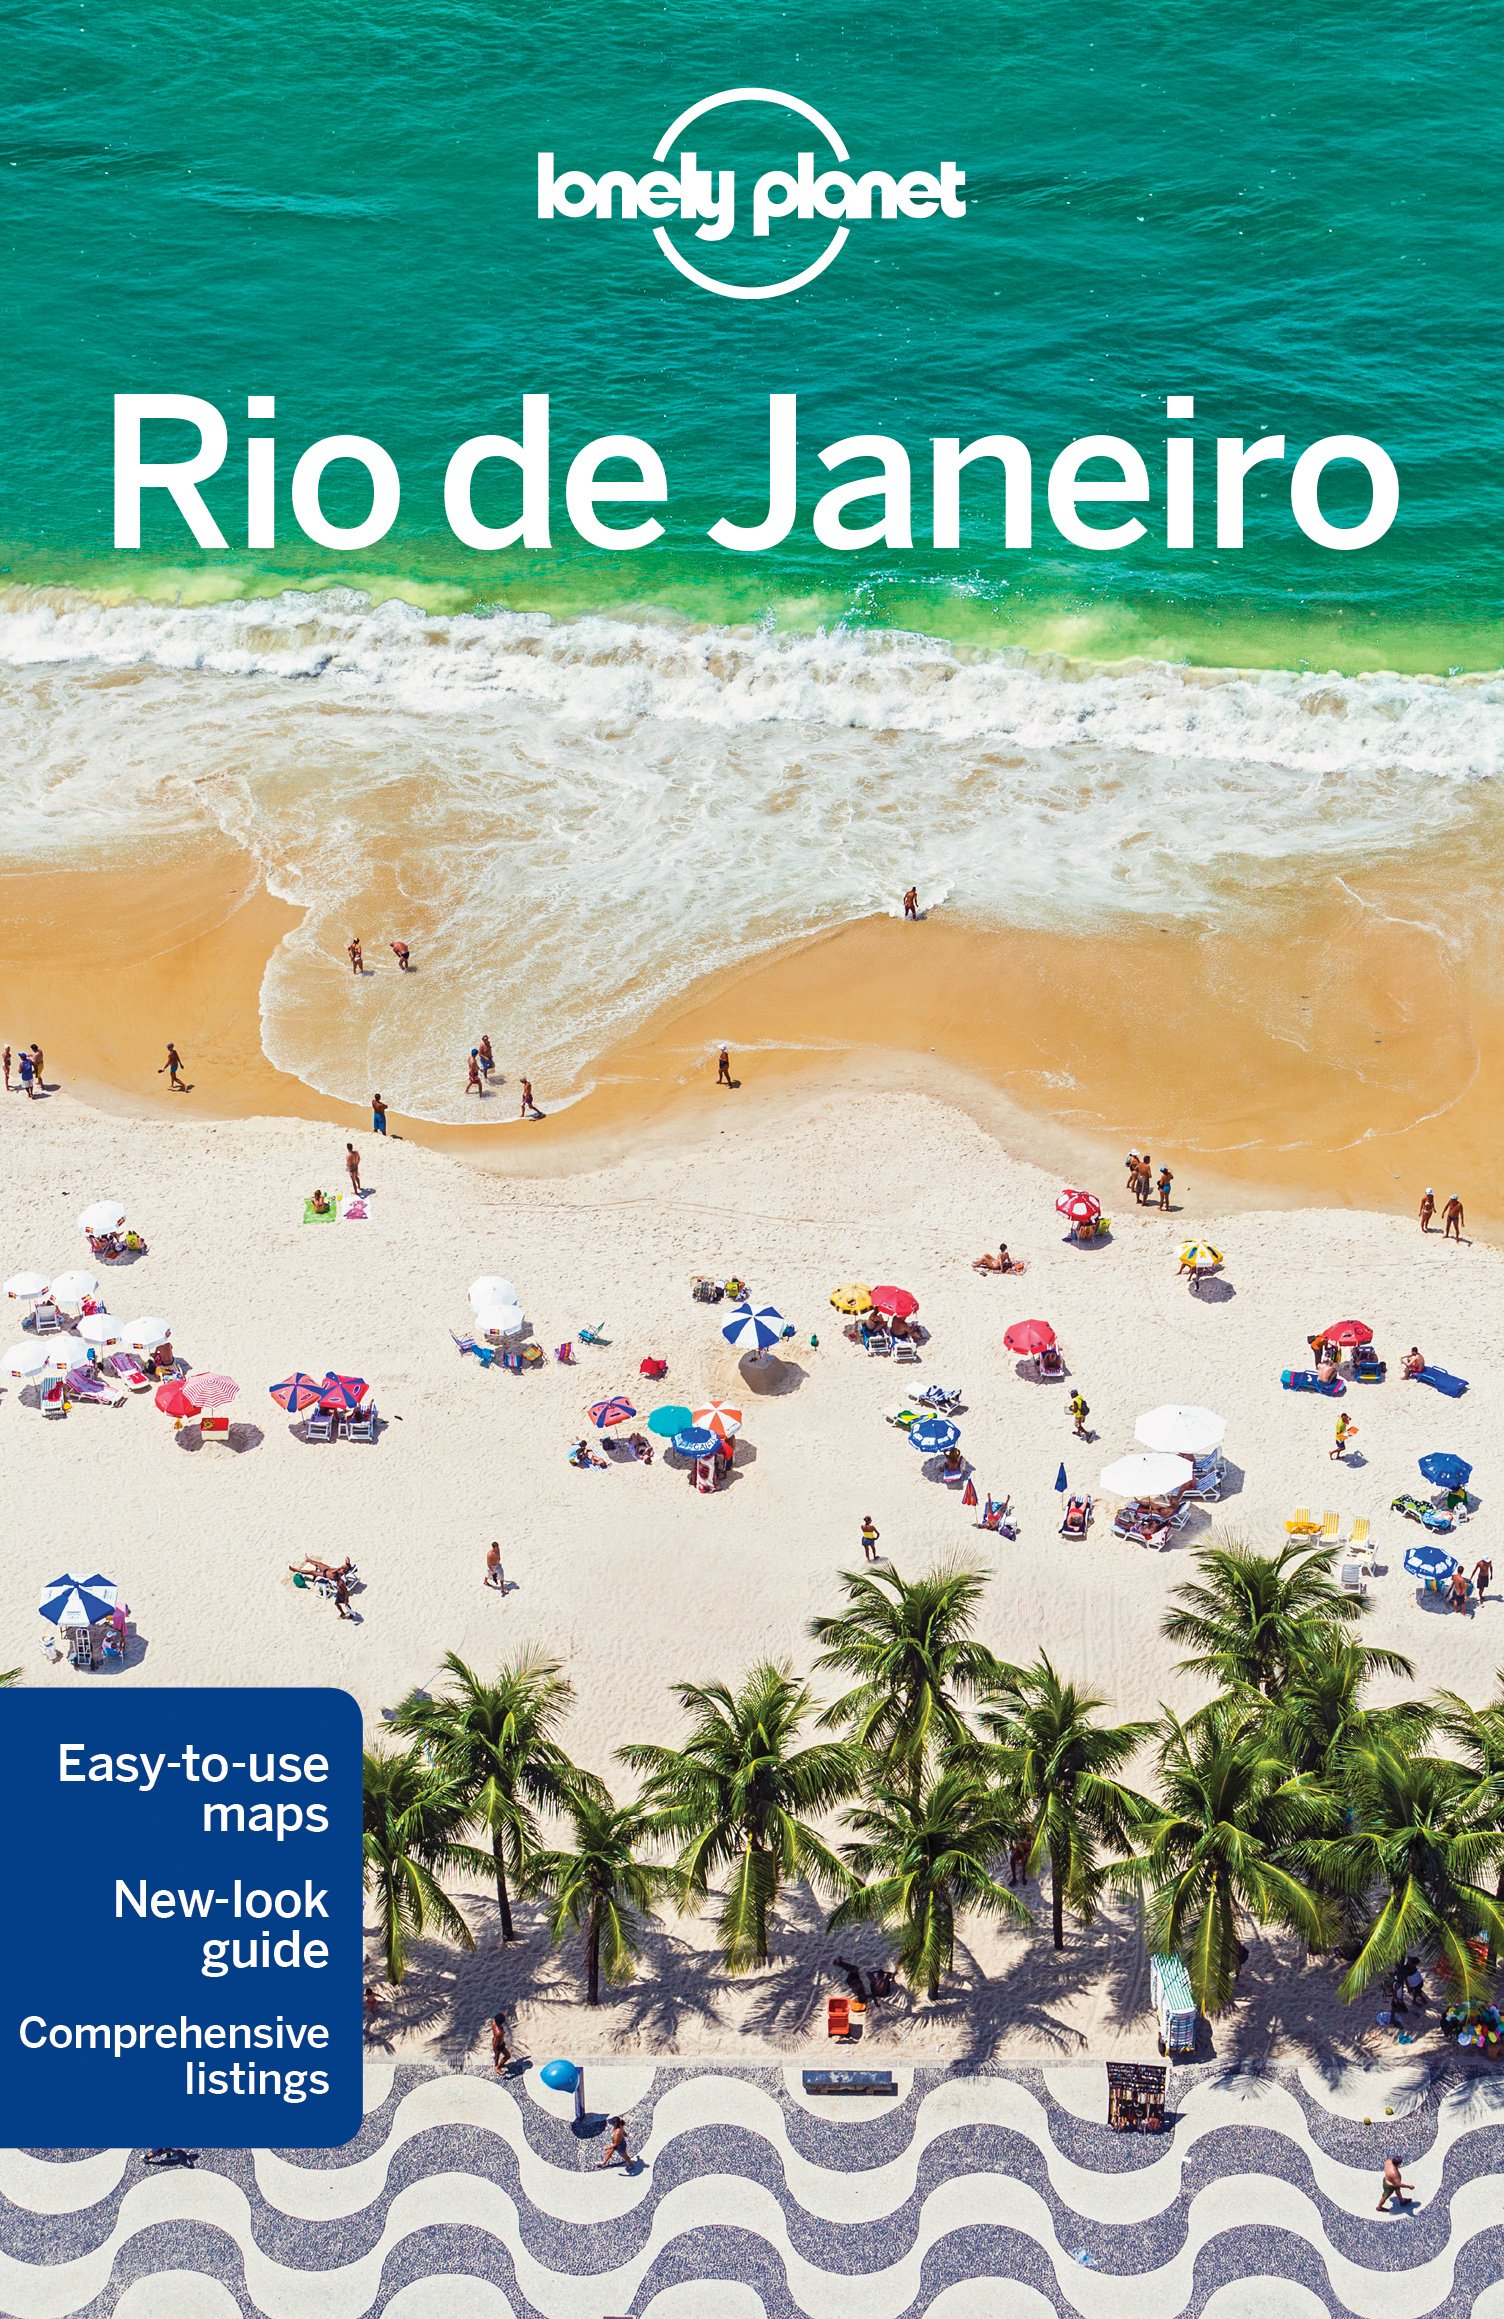 Lonely Planet Janeiro Travel Guide